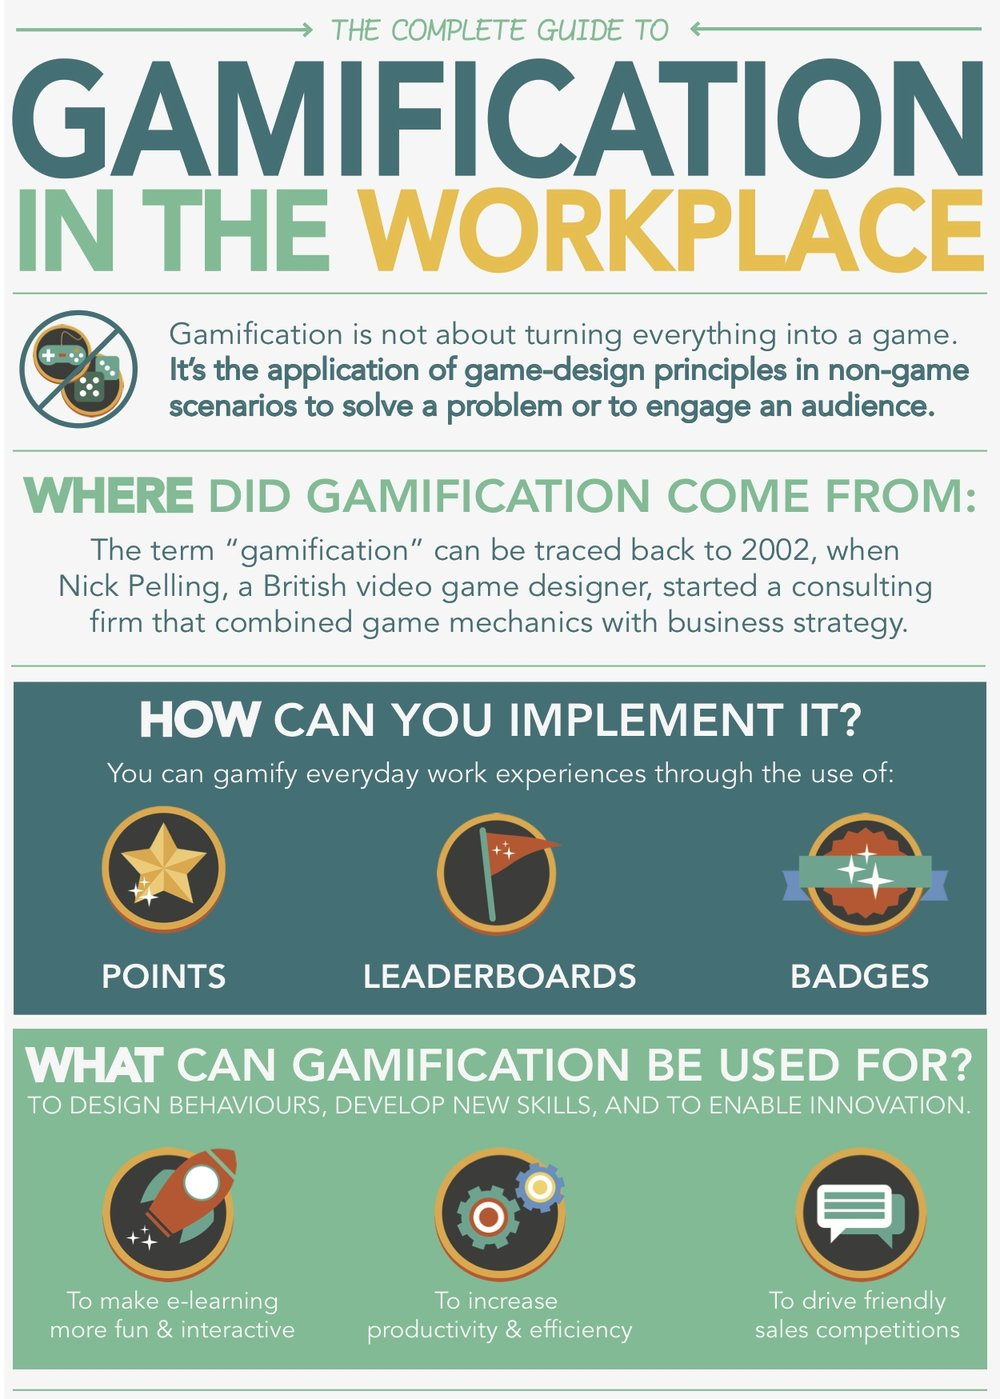 gamification_at_work